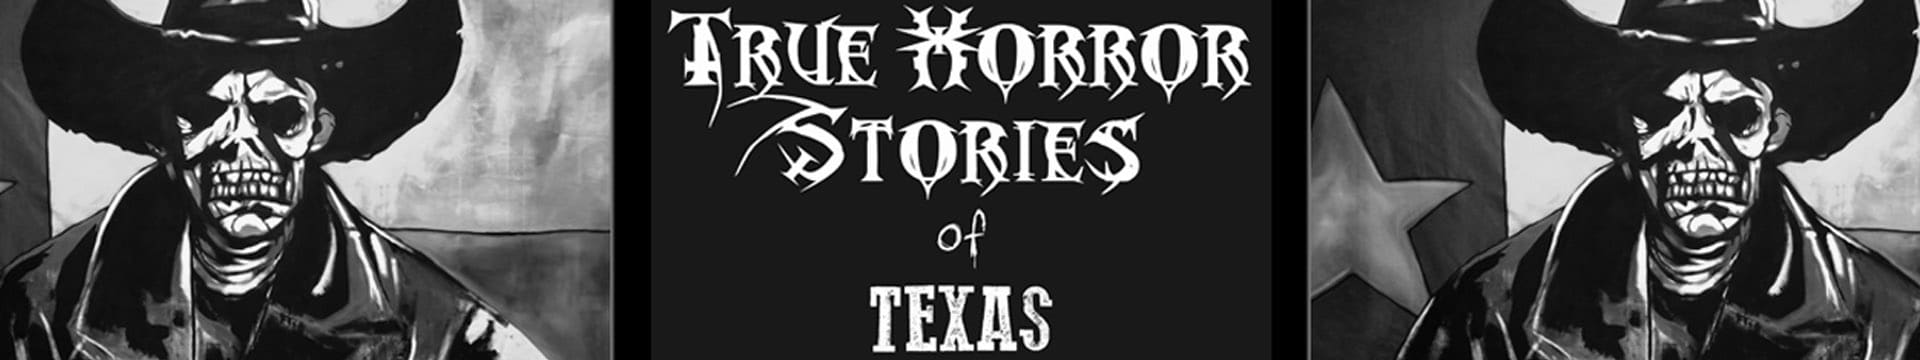 Skinwalker Archives - True Horror Stories of Texas